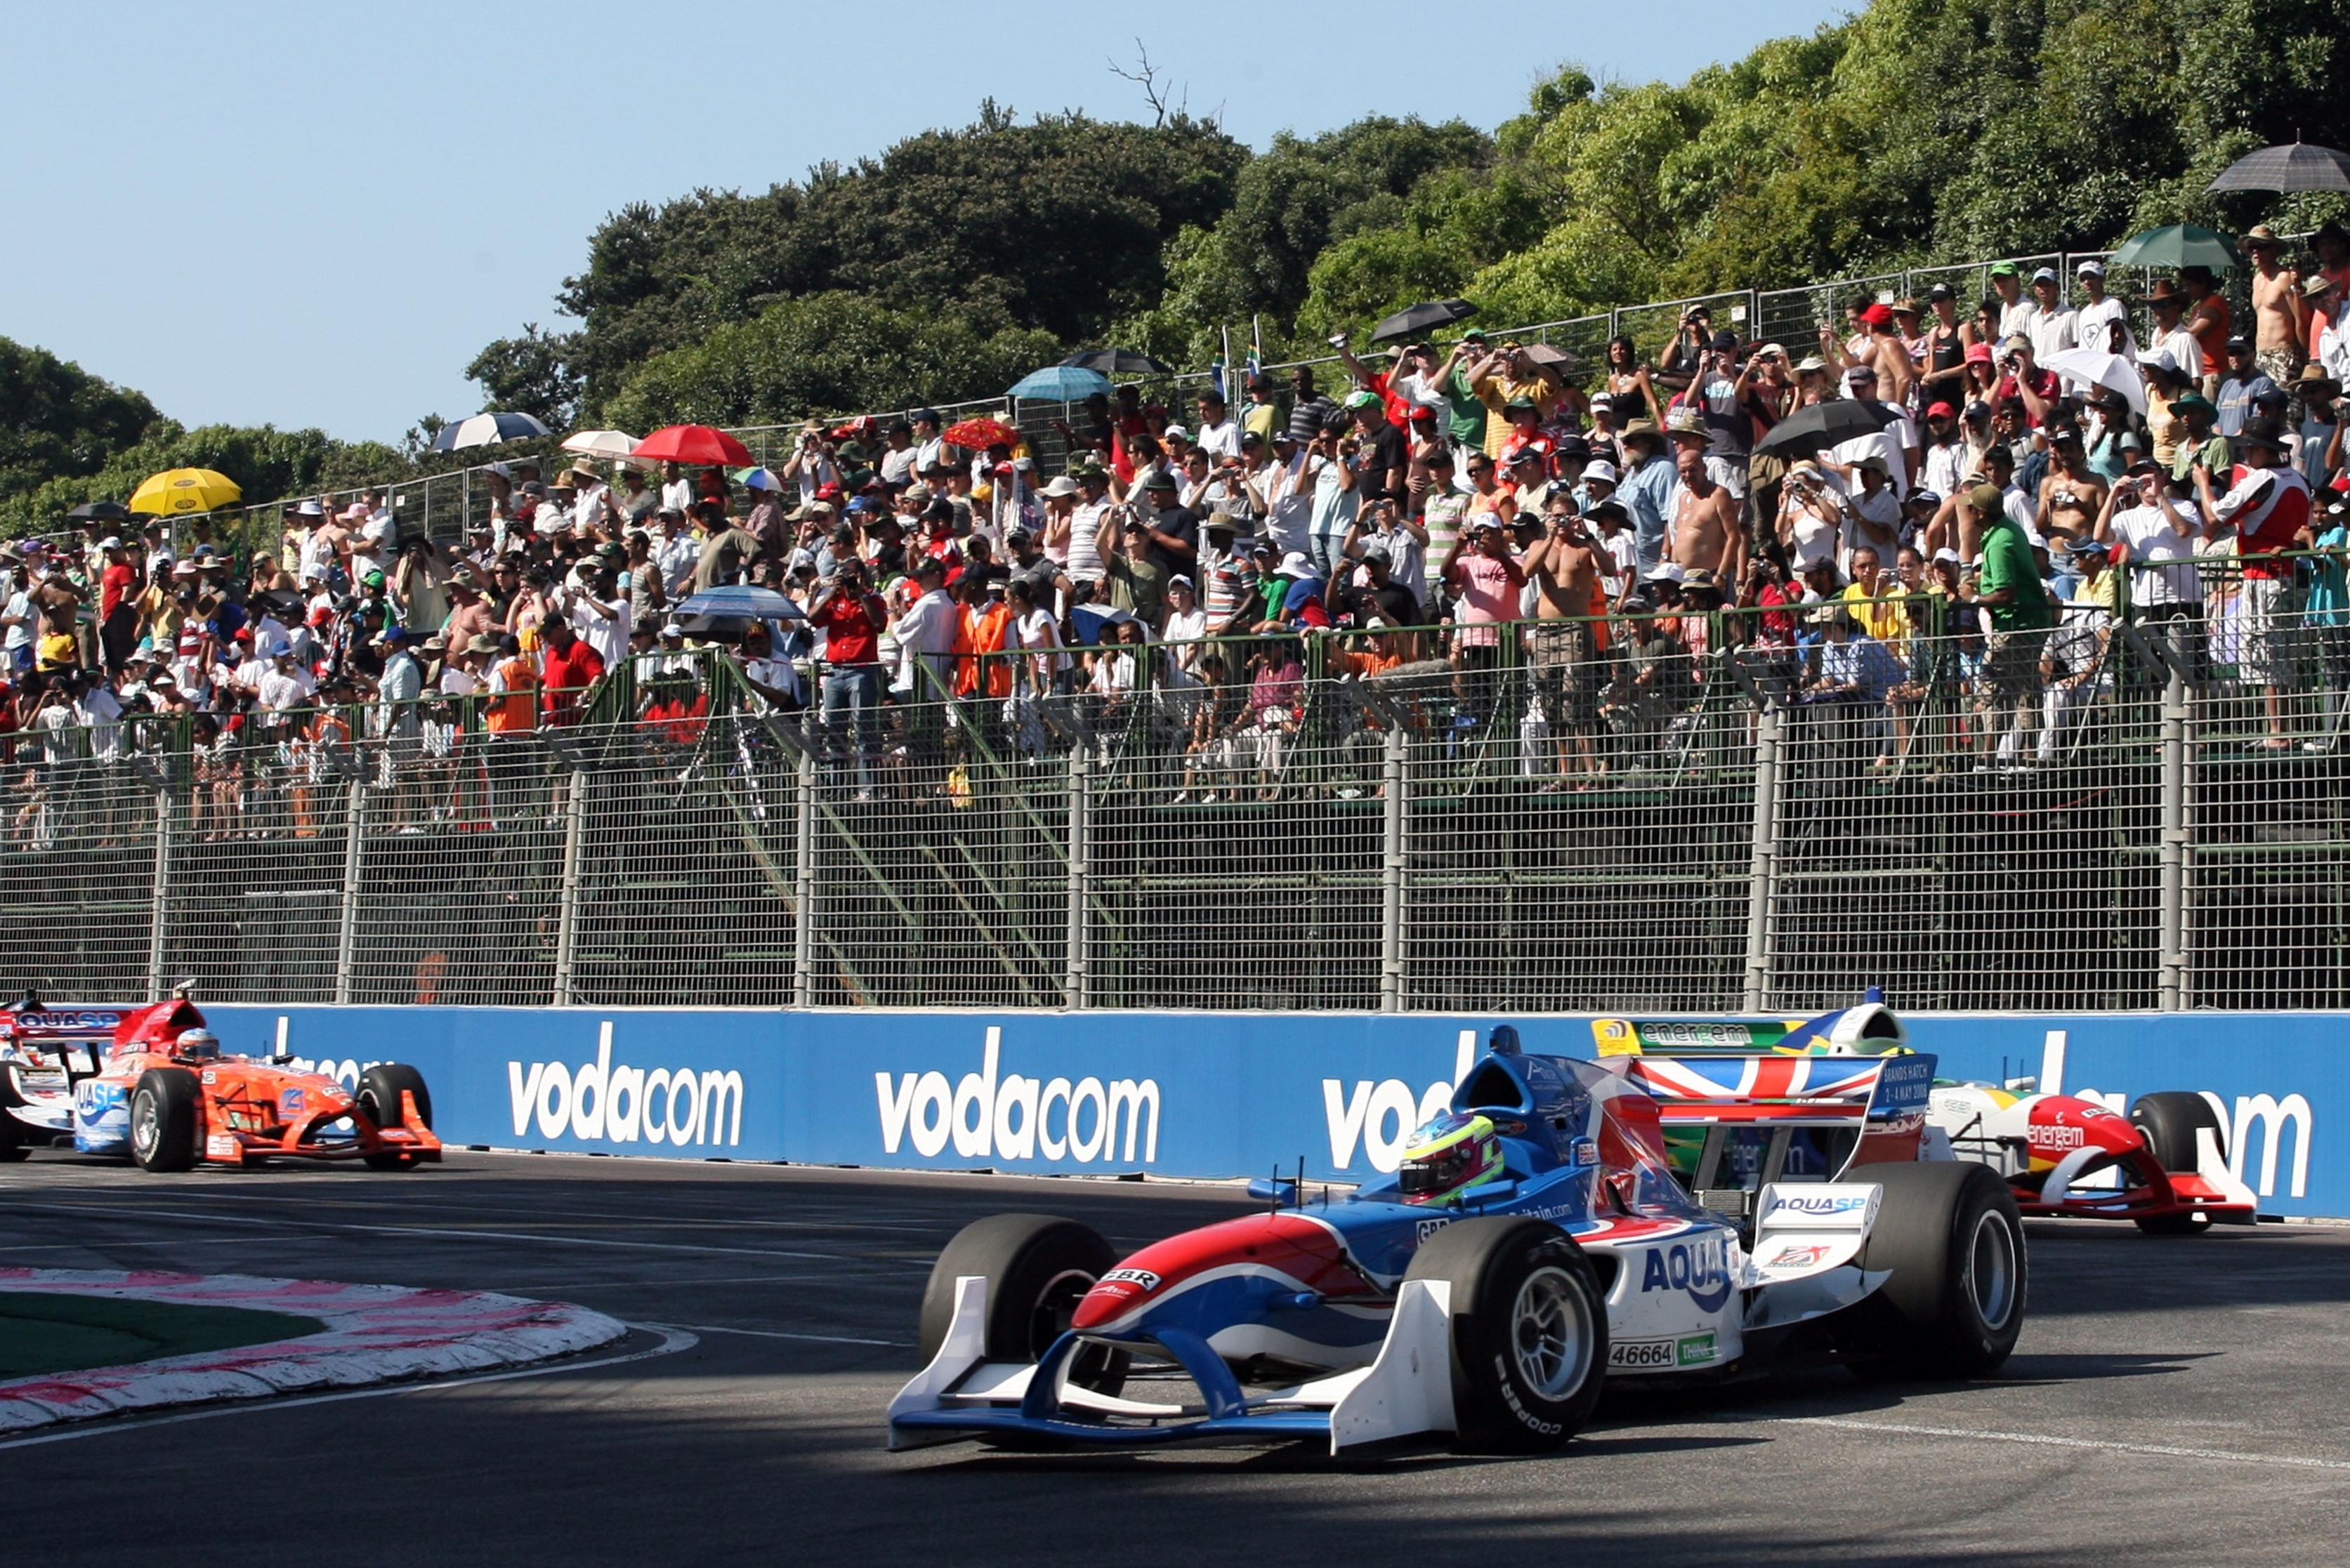 Goodfield will again link up with Jarvis at Le Mans, having worked together in the A1GP days